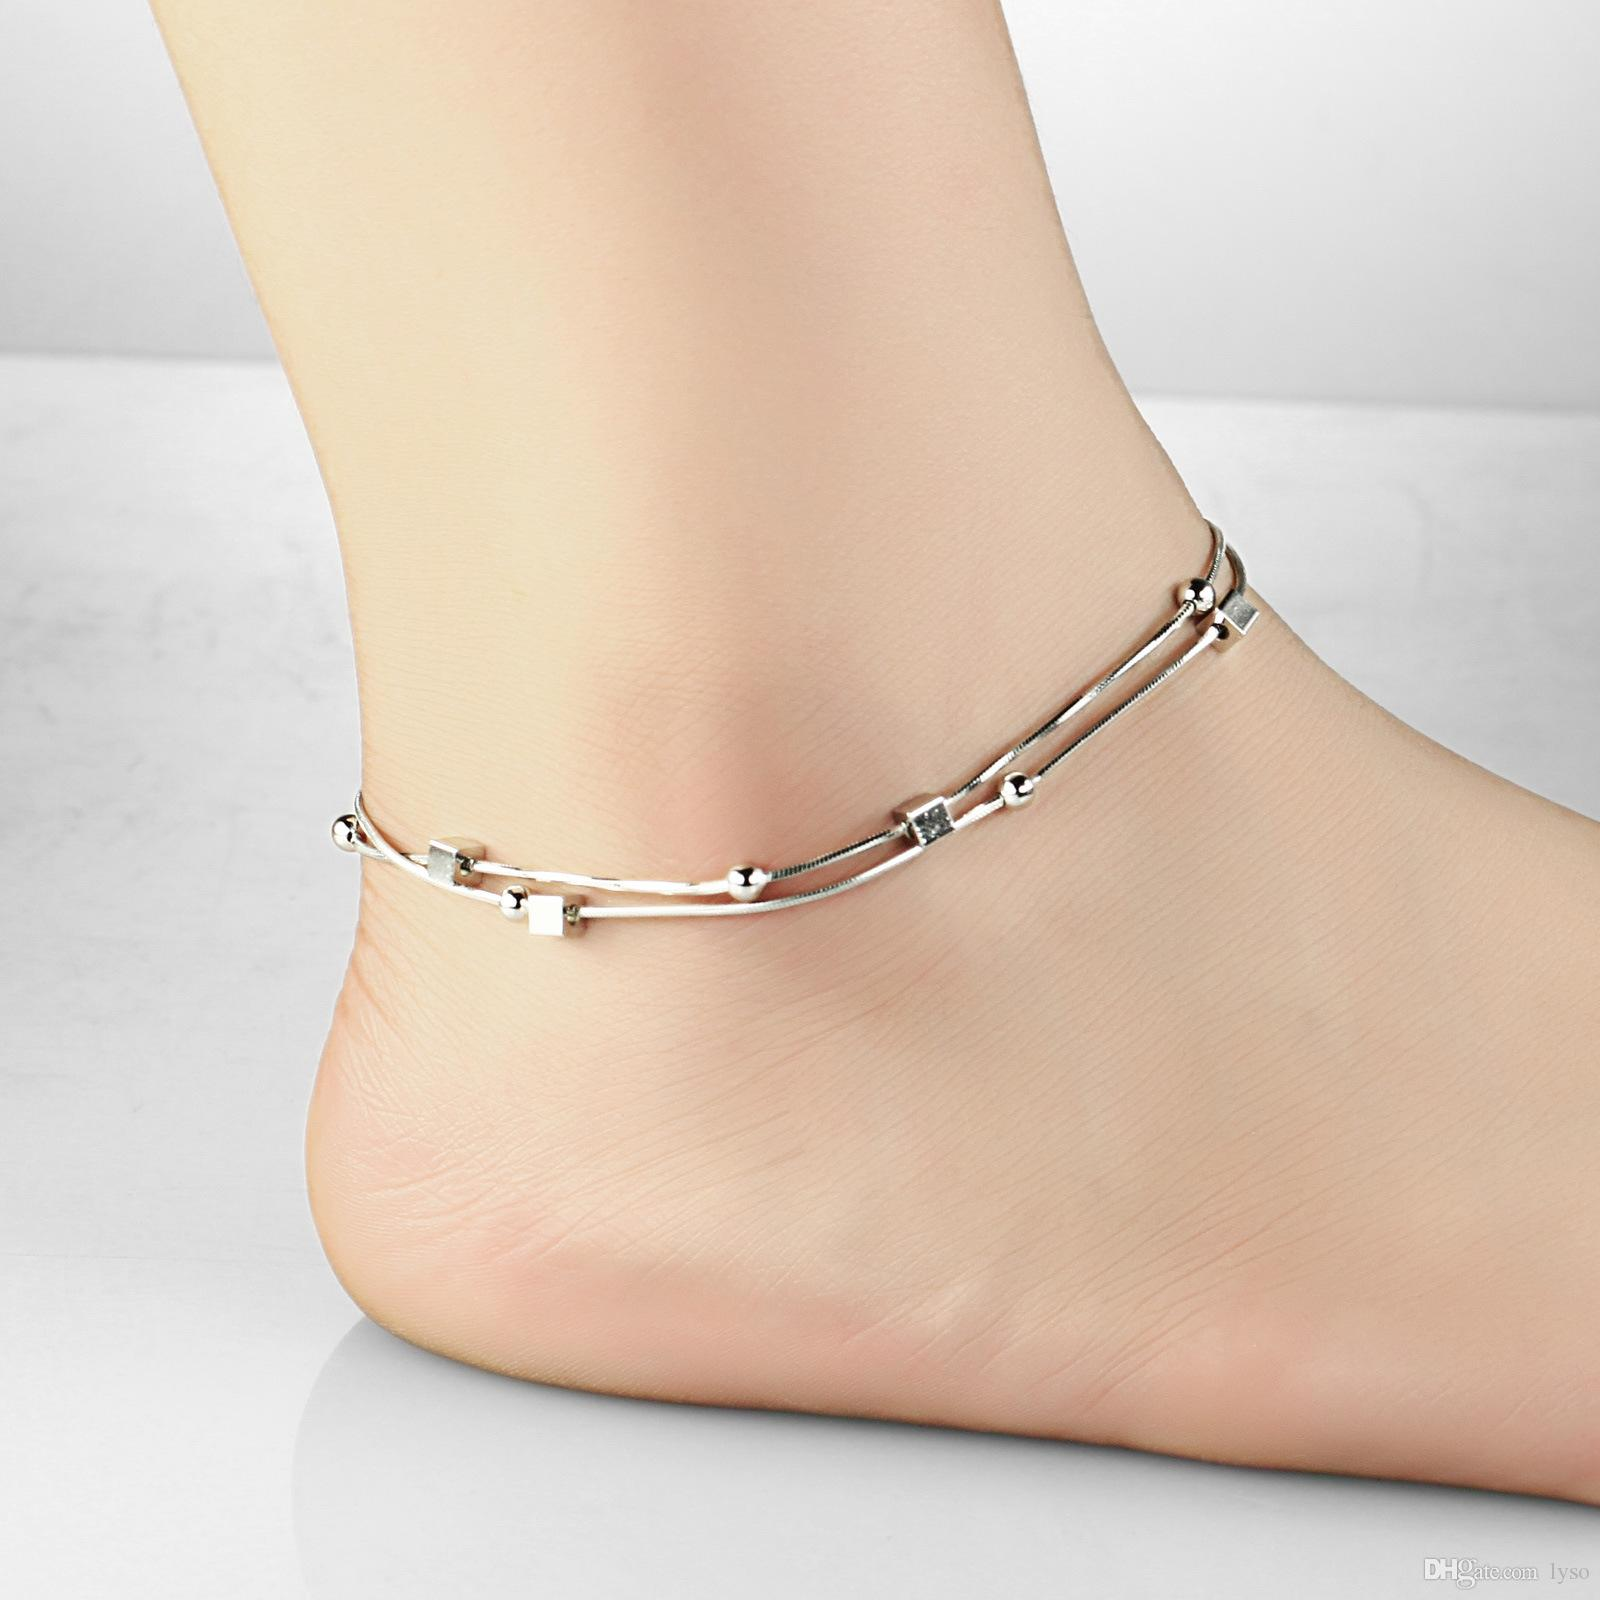 buy amazon low store india dp jewellery in sterling sleek anklet plain designer piece at silver adjustable eloish prices online design single rxwl